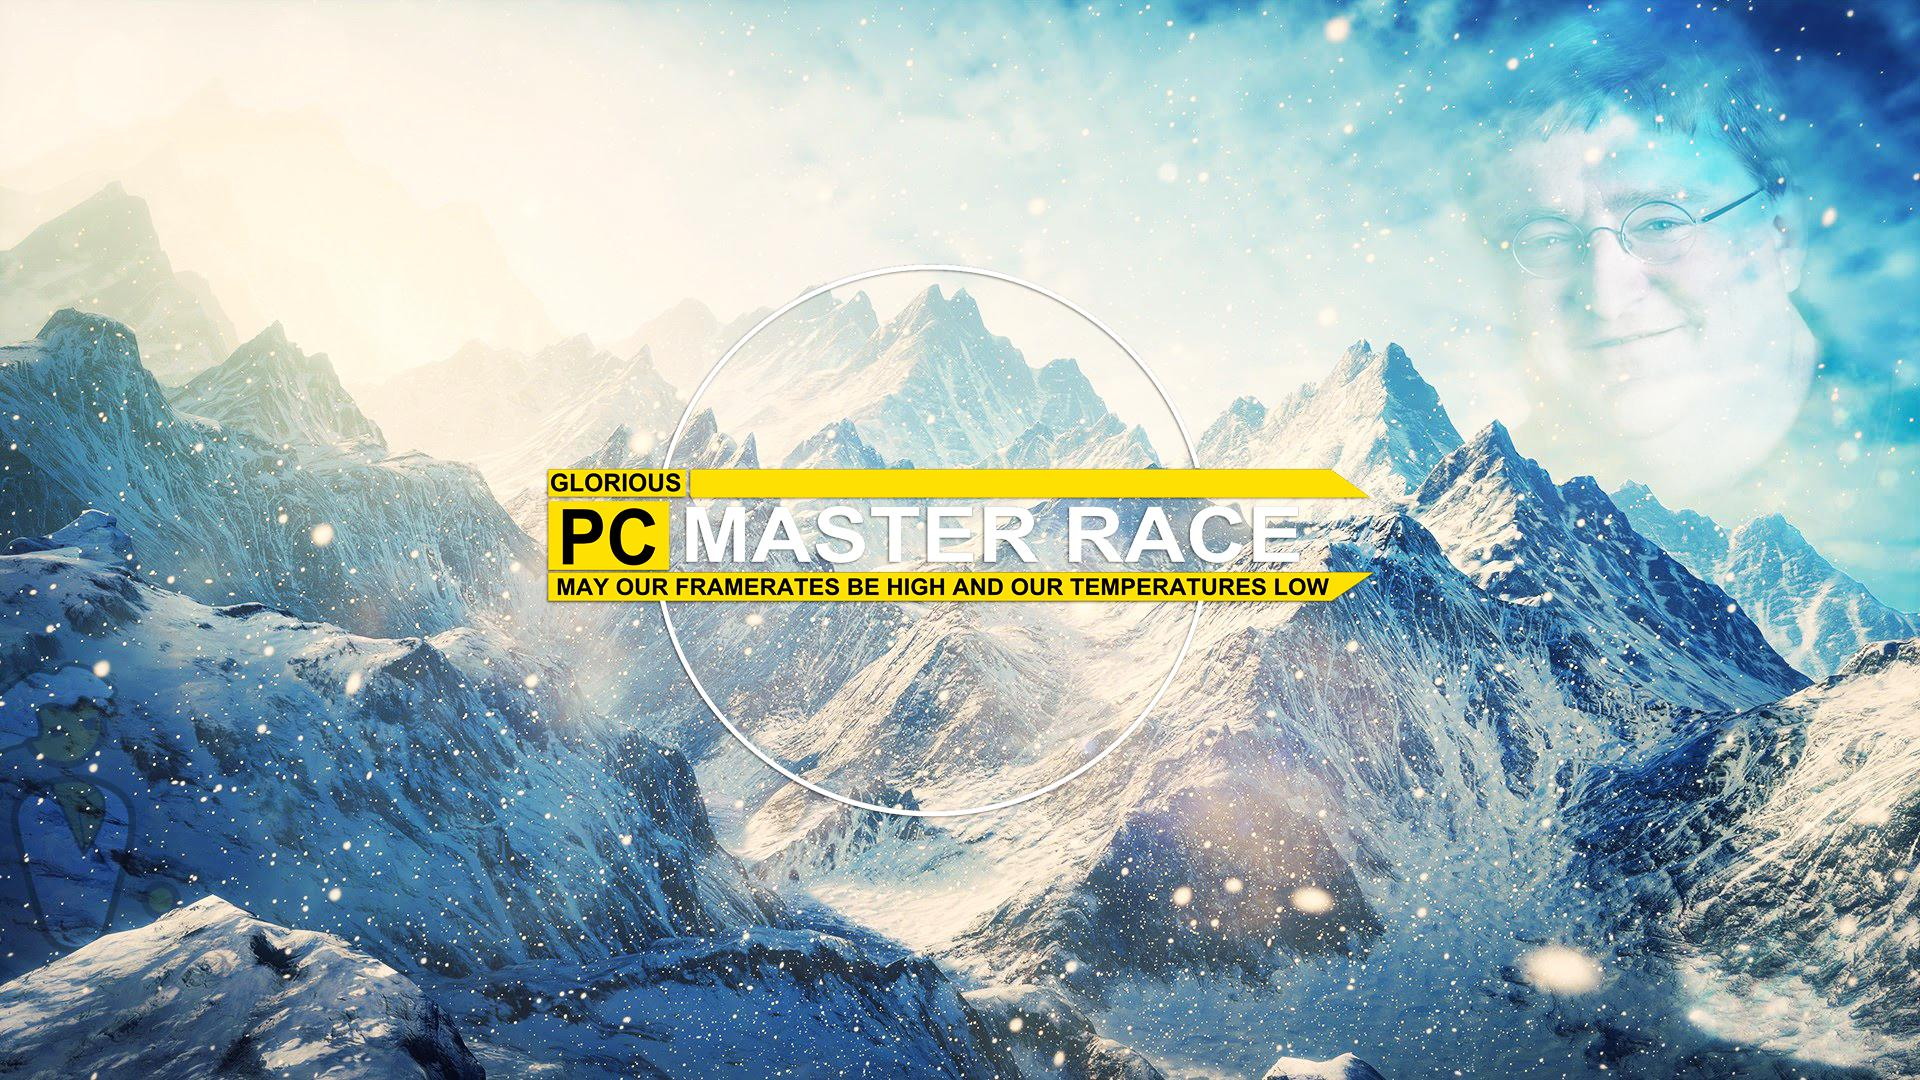 Pcmr Wallpaper: Is My Desktop Worthy Of The PCMR? : Pcmasterrace